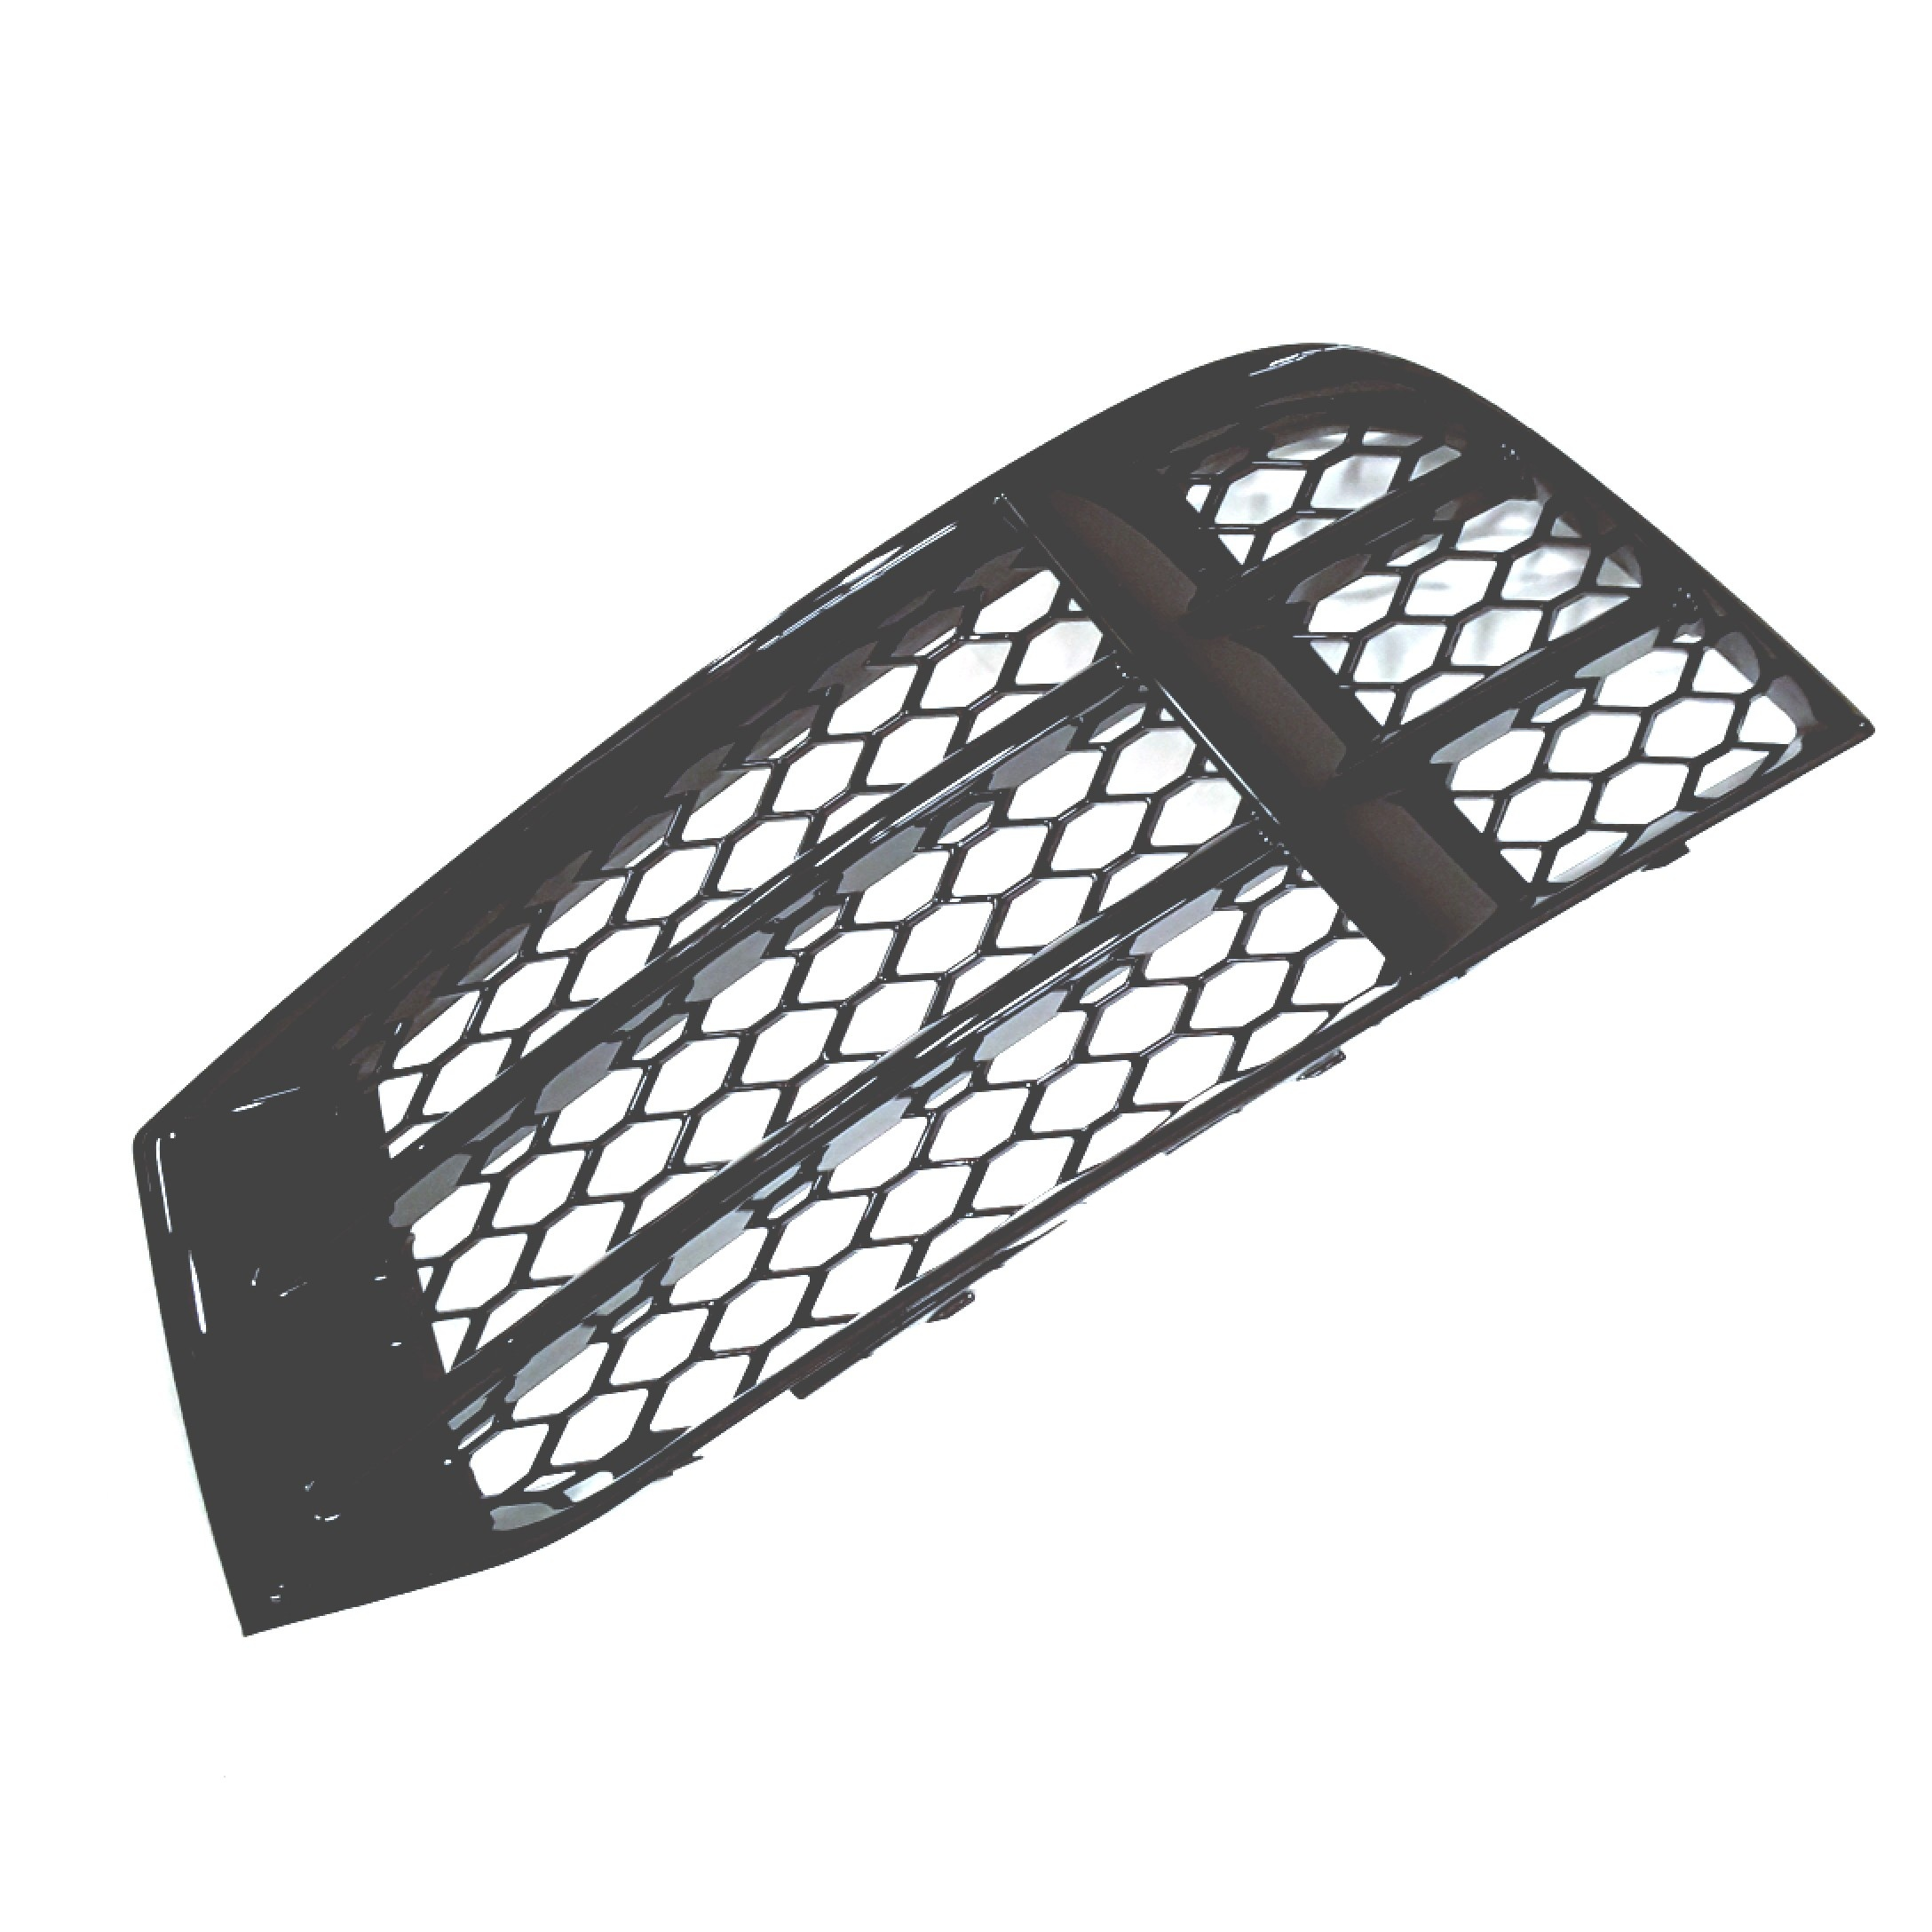 2015 Audi Rs5 Grille Outer Grille Wauto 8t0807681ft94